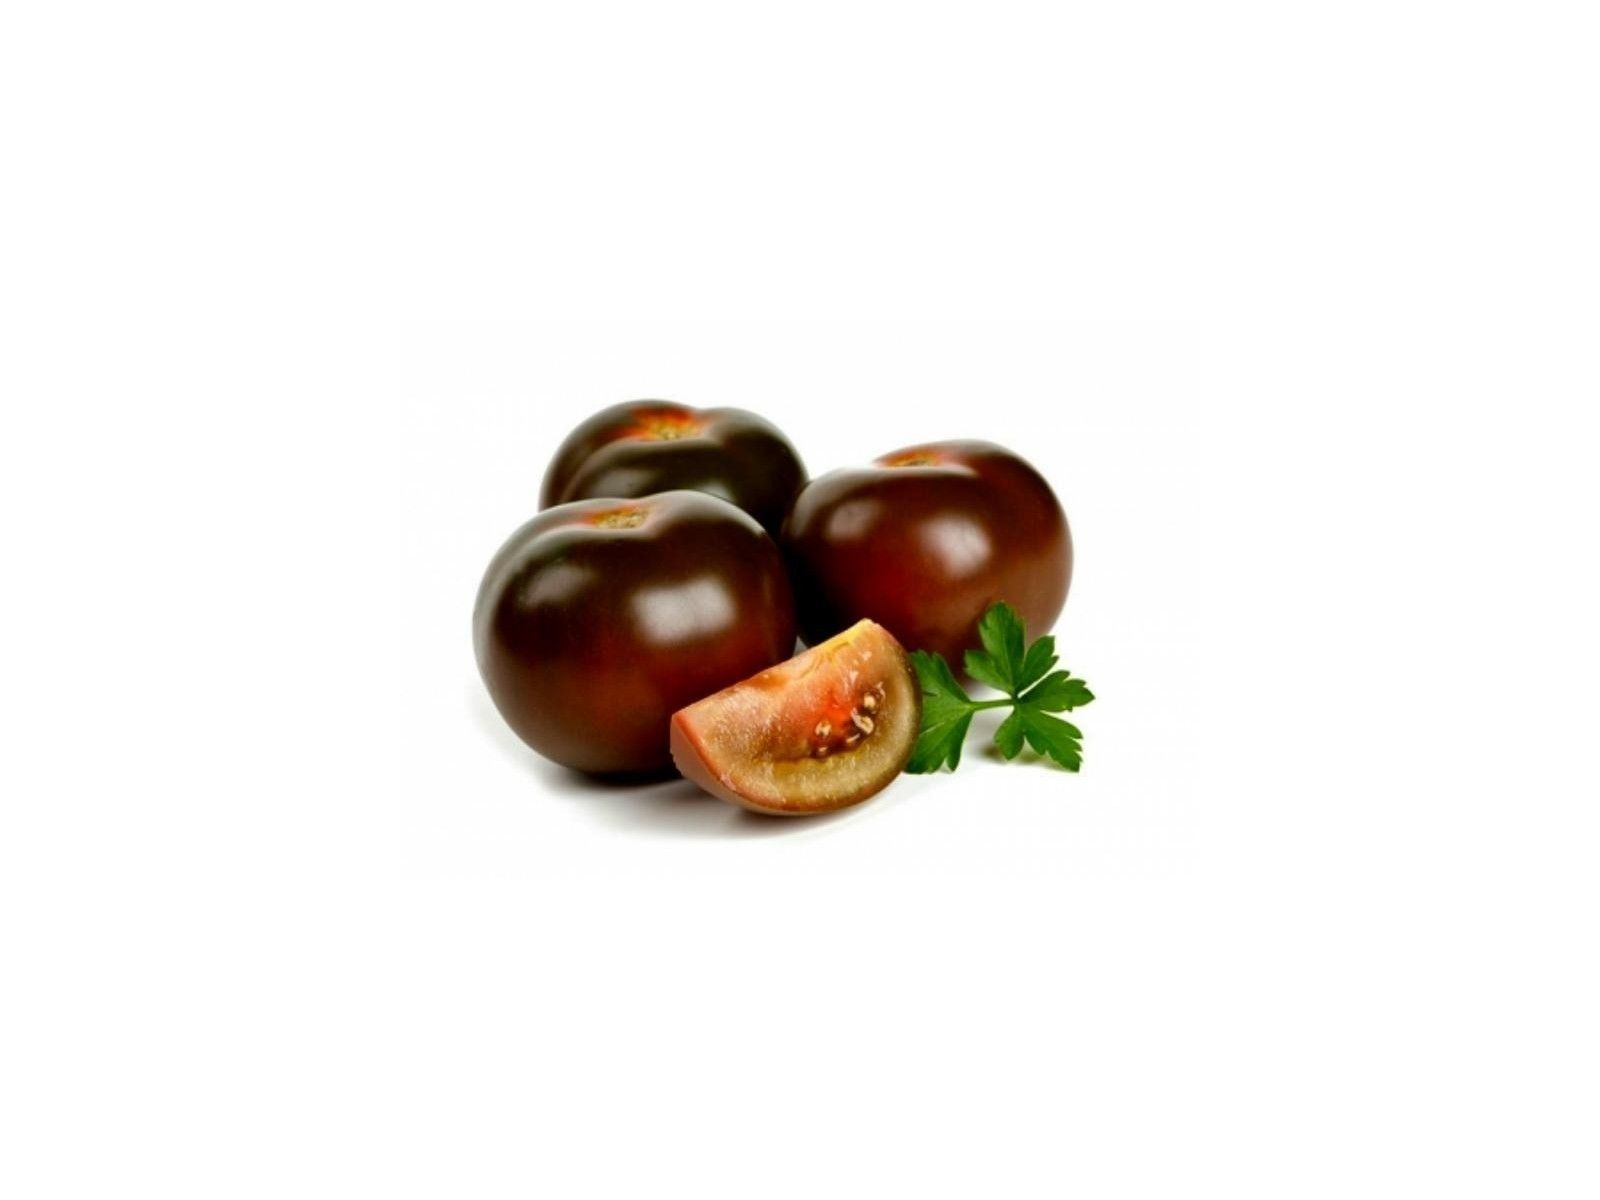 1 95 Kumato Tomato Seeds Price For Package Of 10 Seeds Kumato Is